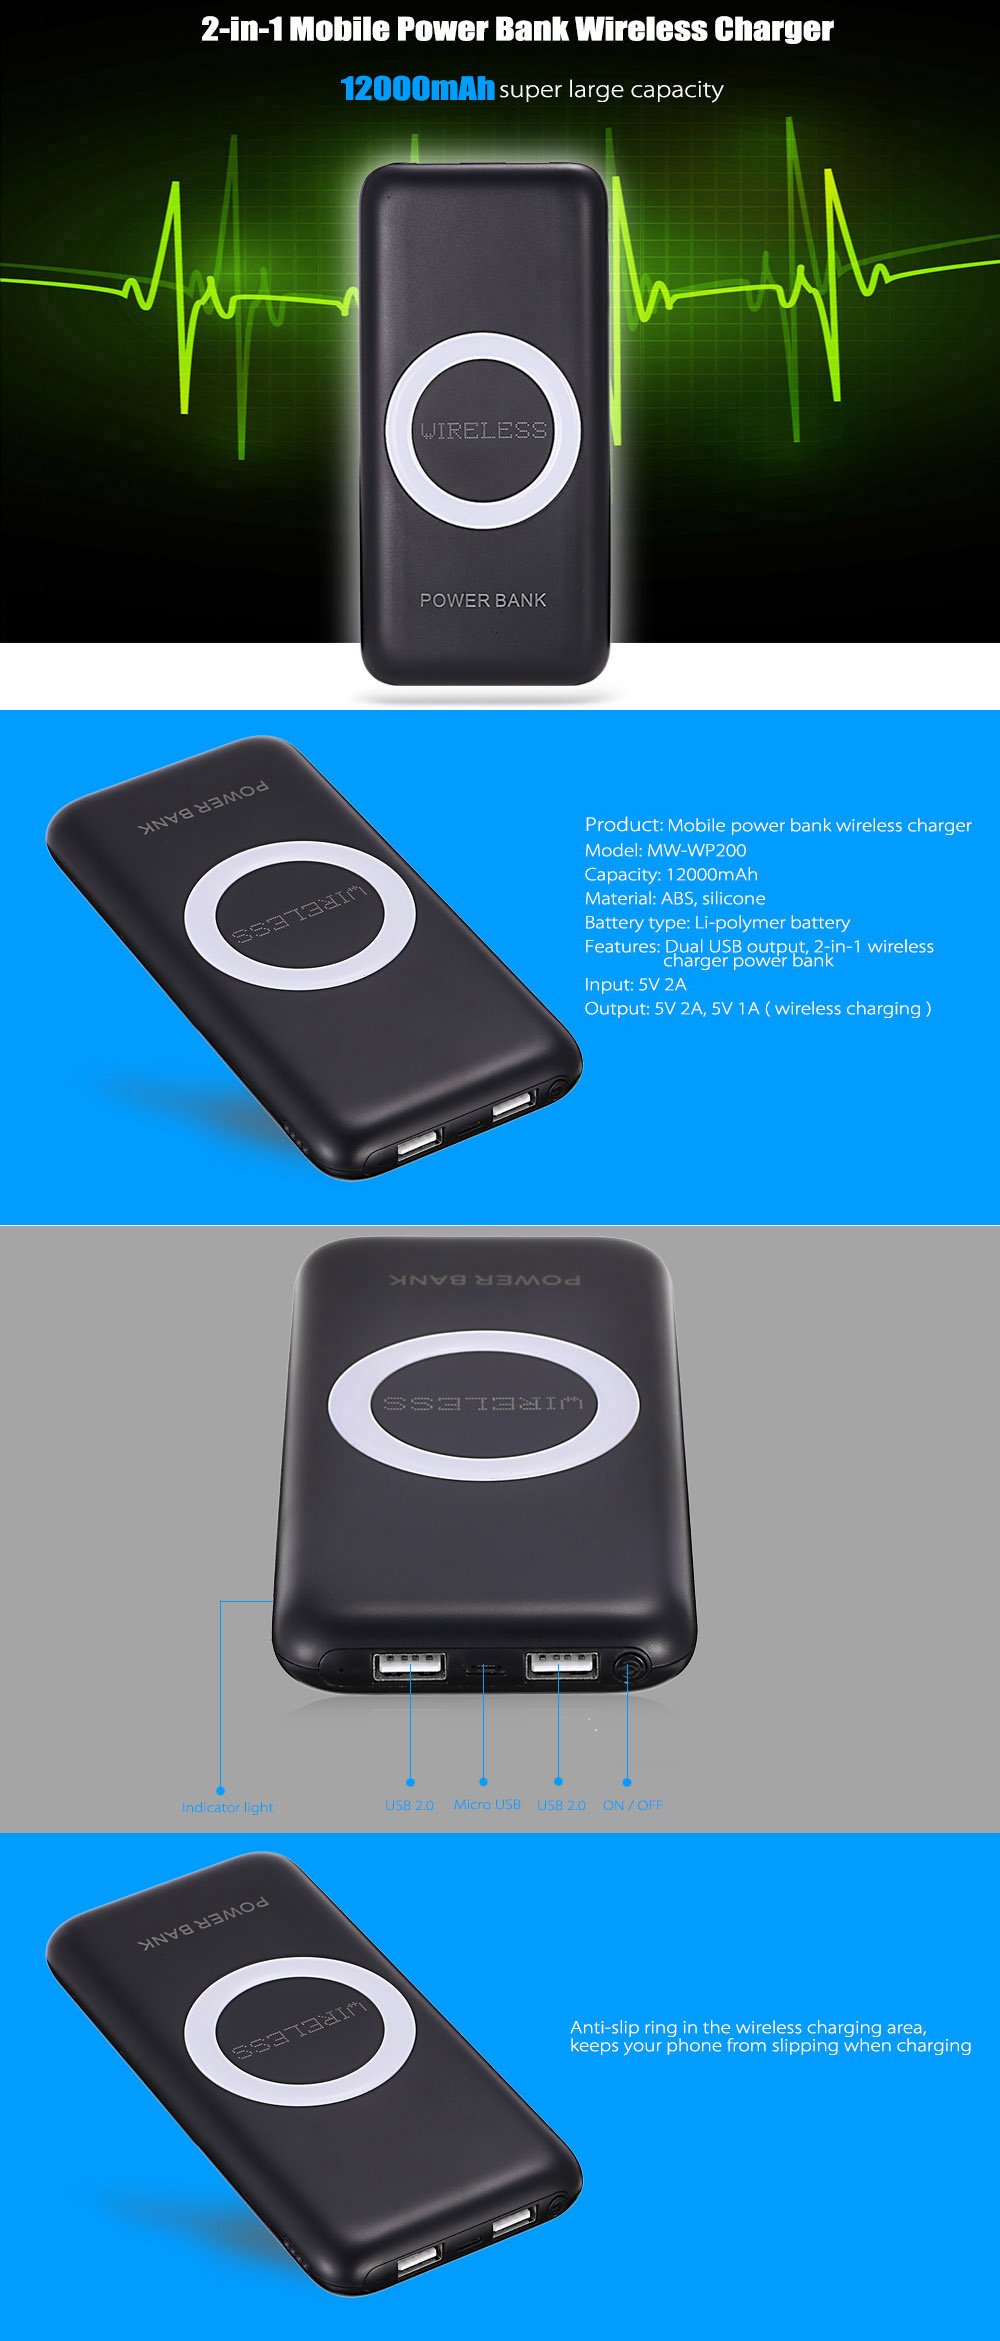 MW - WP200 2-in-1 12000mAh Mobile Power Bank Wireless Charger Transmitter Launcher Dual USB Output